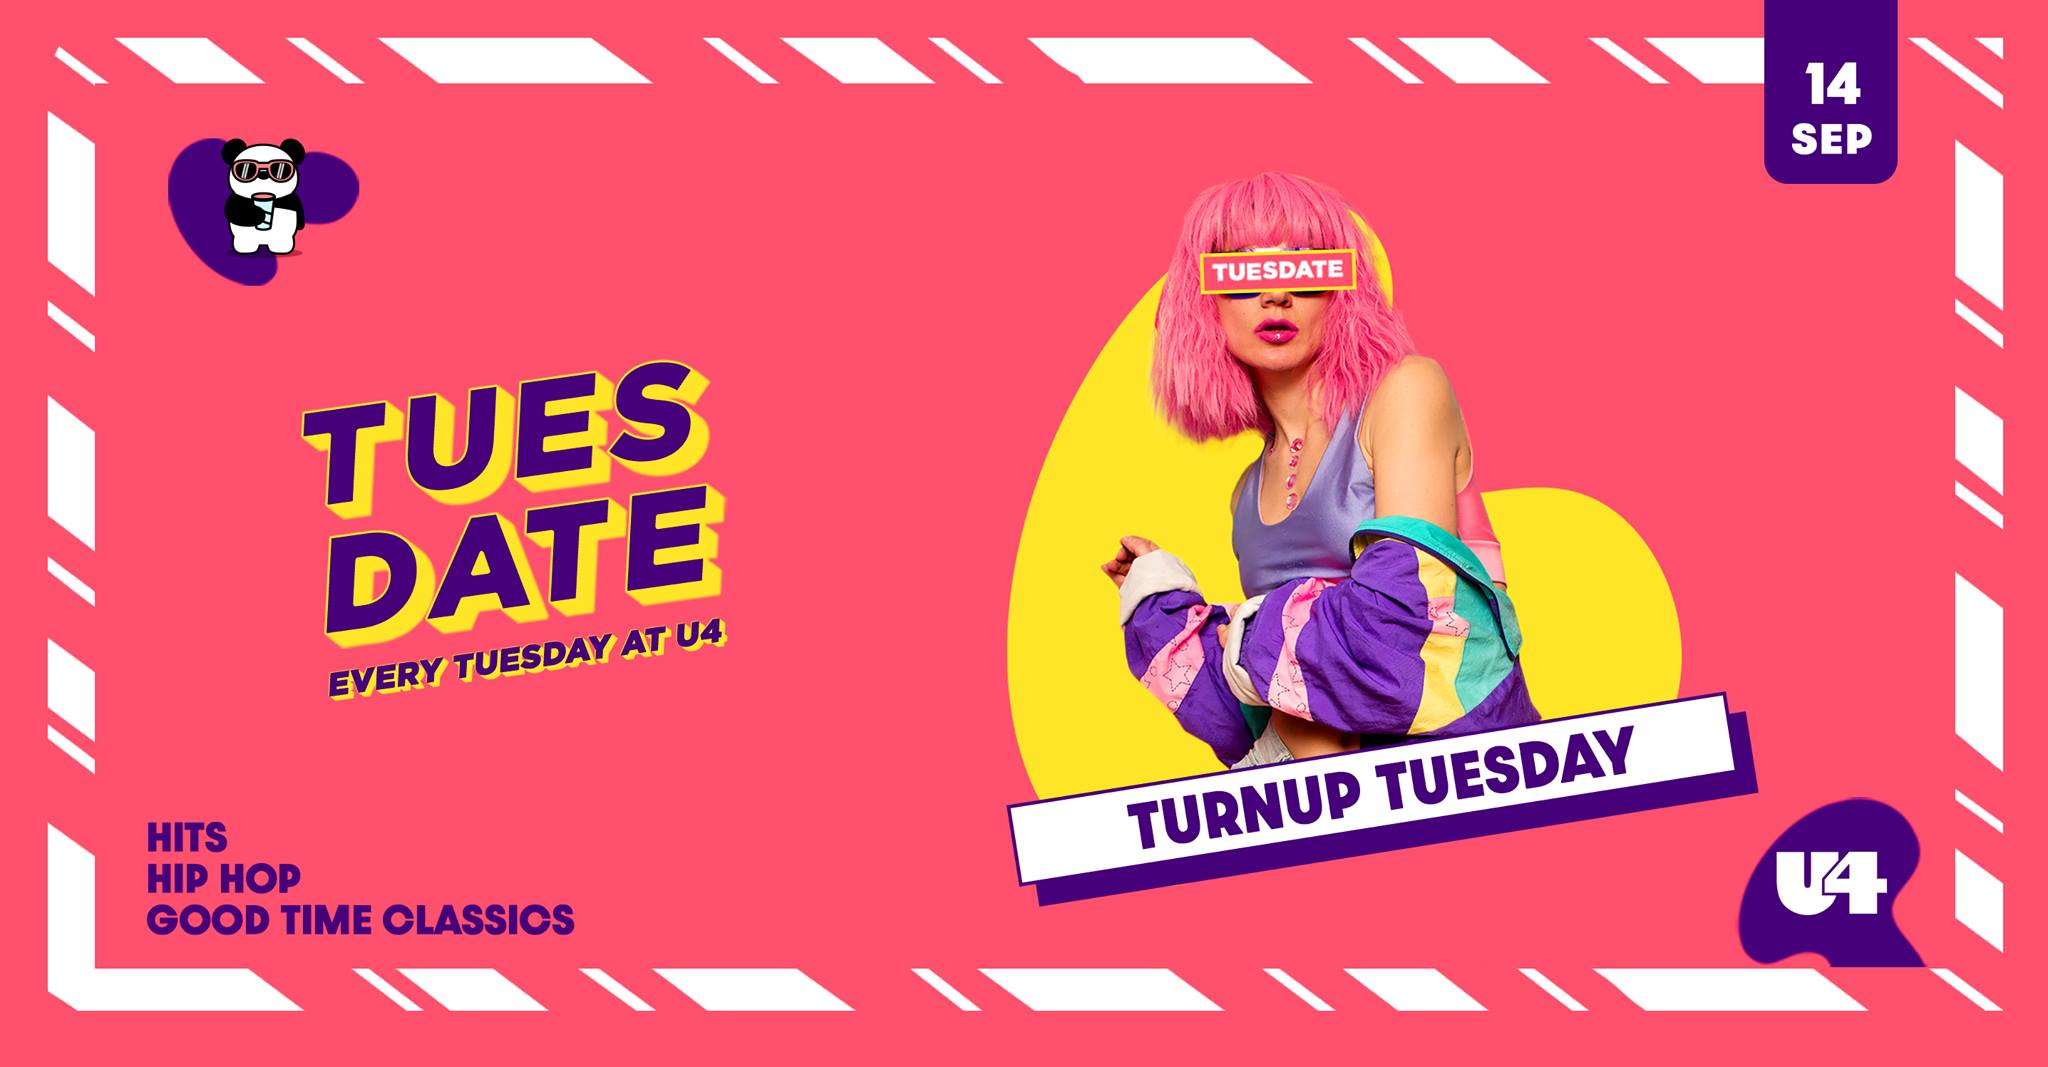 Events Wien: Turnup Tuesday   Tuesdate   14.09.